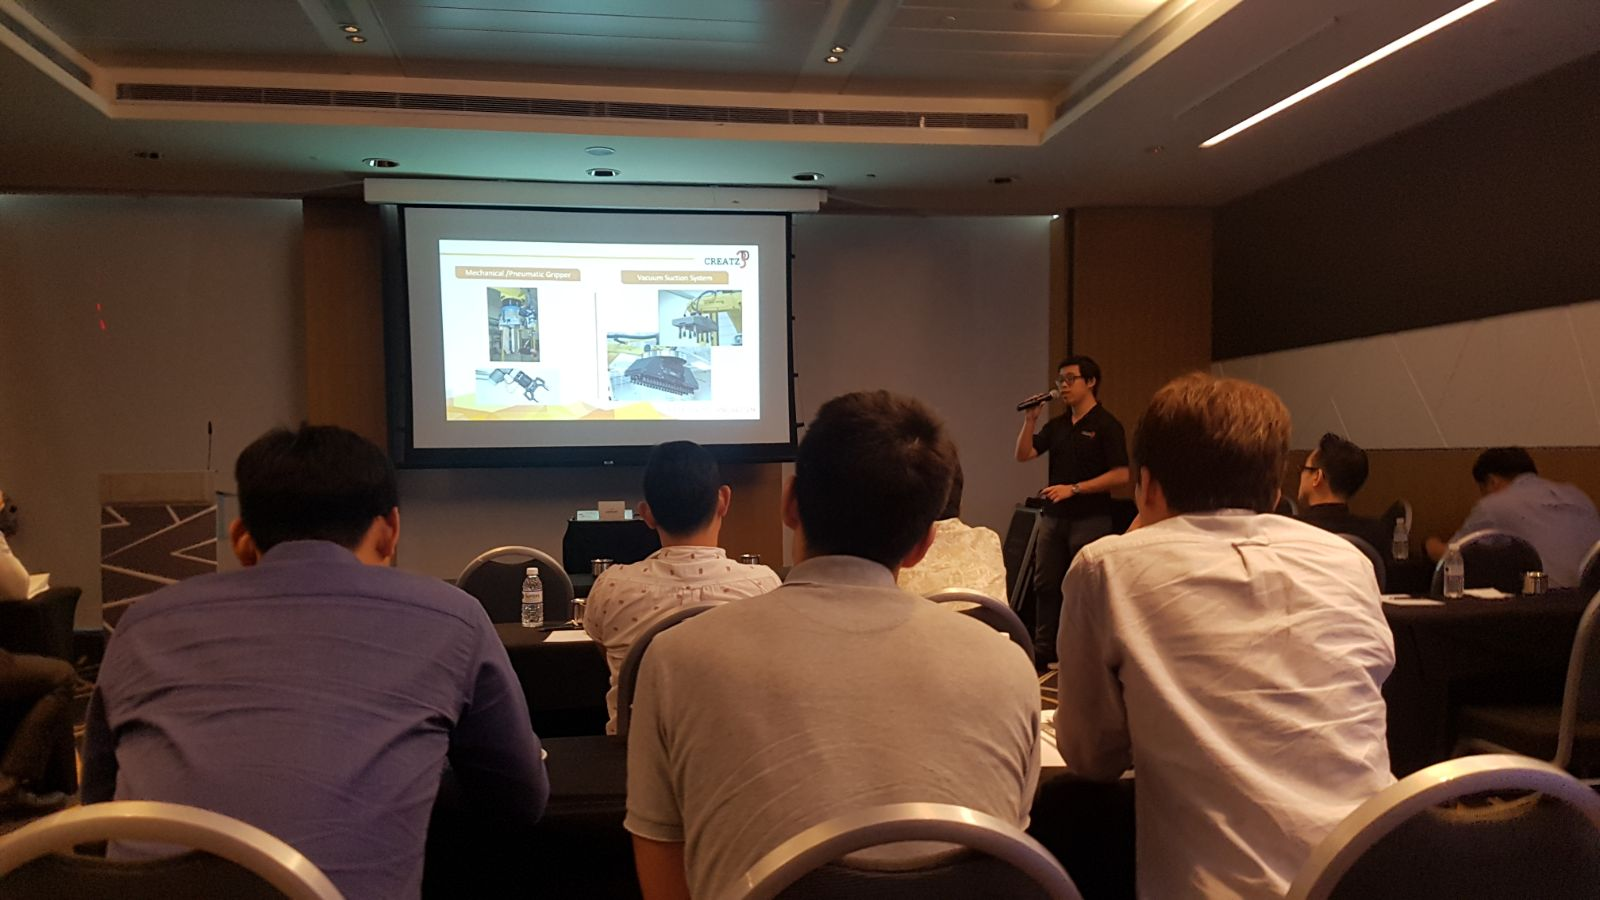 Mr. Cheong Zhi Sheng of Creatz3D presenting on the synergy between 3D printing and end-of-arm-tooling